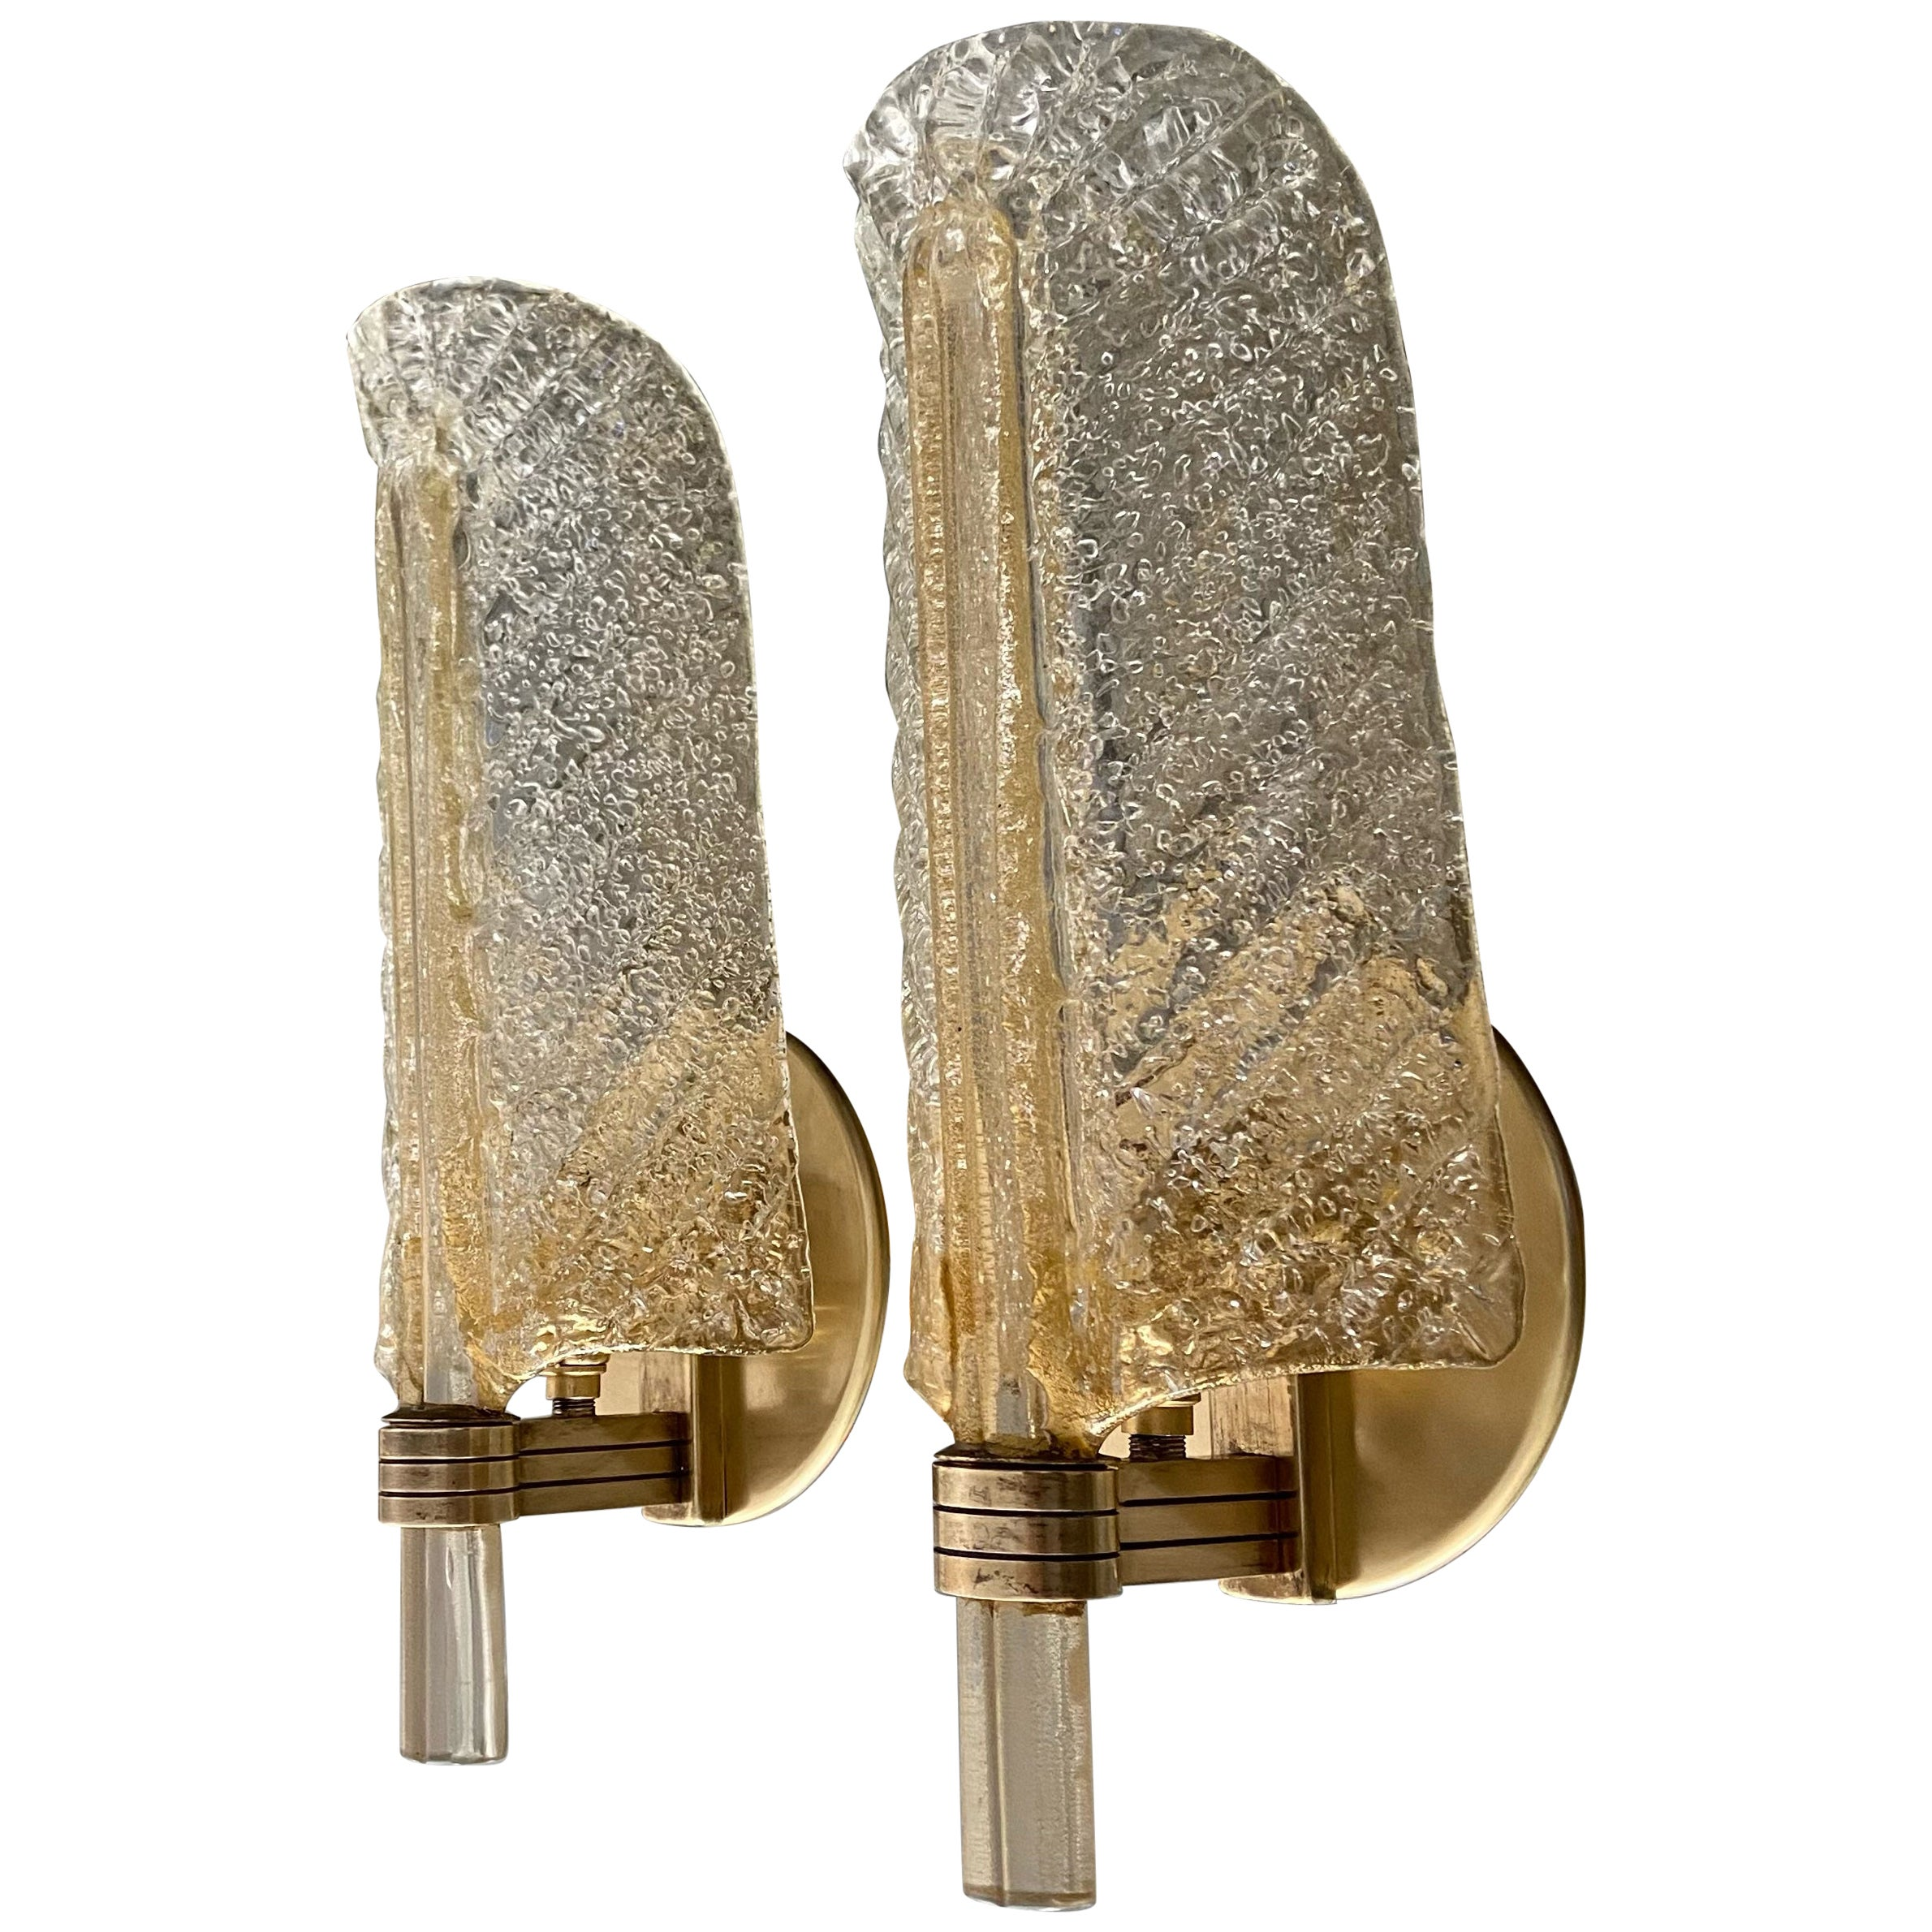 Pair of Barovier Murano Rugiadoso Gold Leaf Wall Sconces